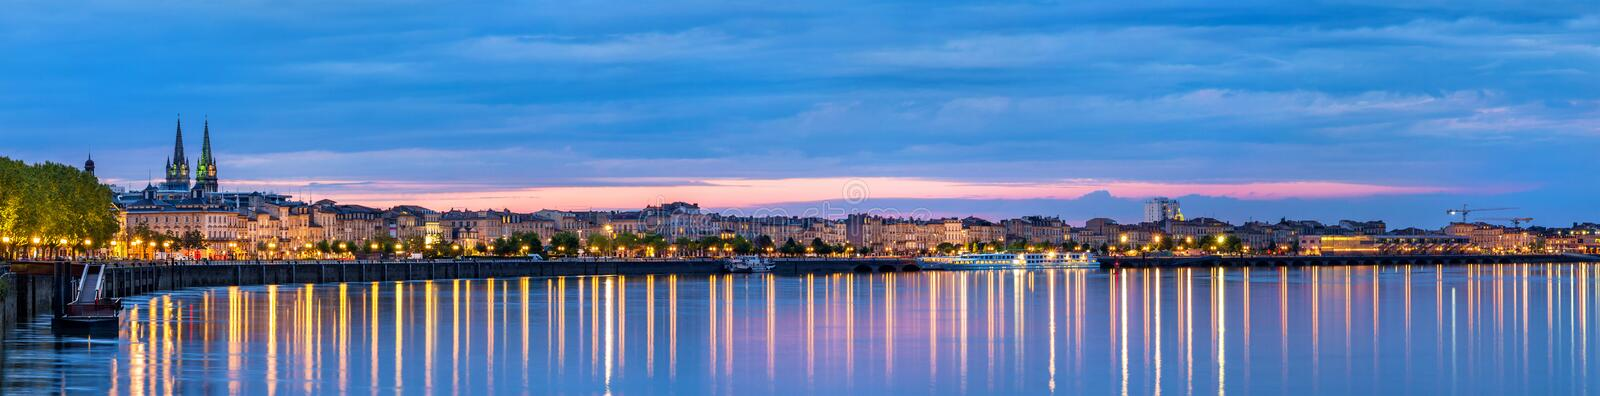 Panorama of Bordeaux in the evening royalty free stock images